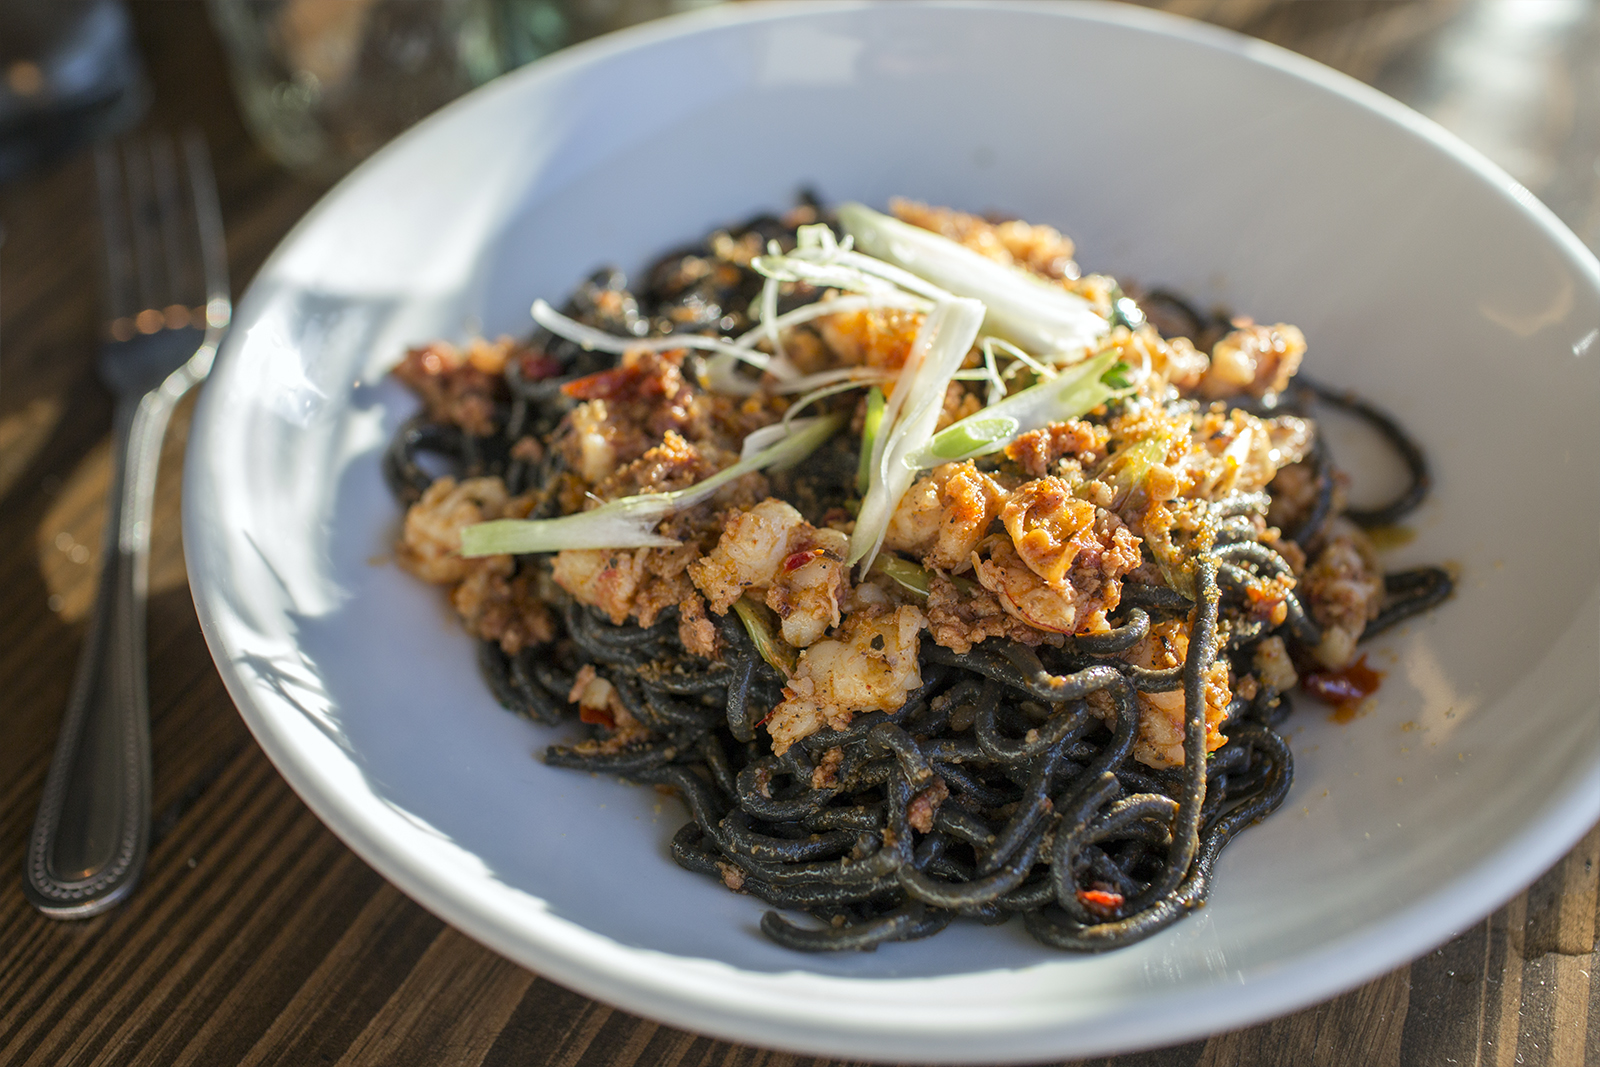 Black spaghetti, hot calabrese sausage, red shrimp, scallions